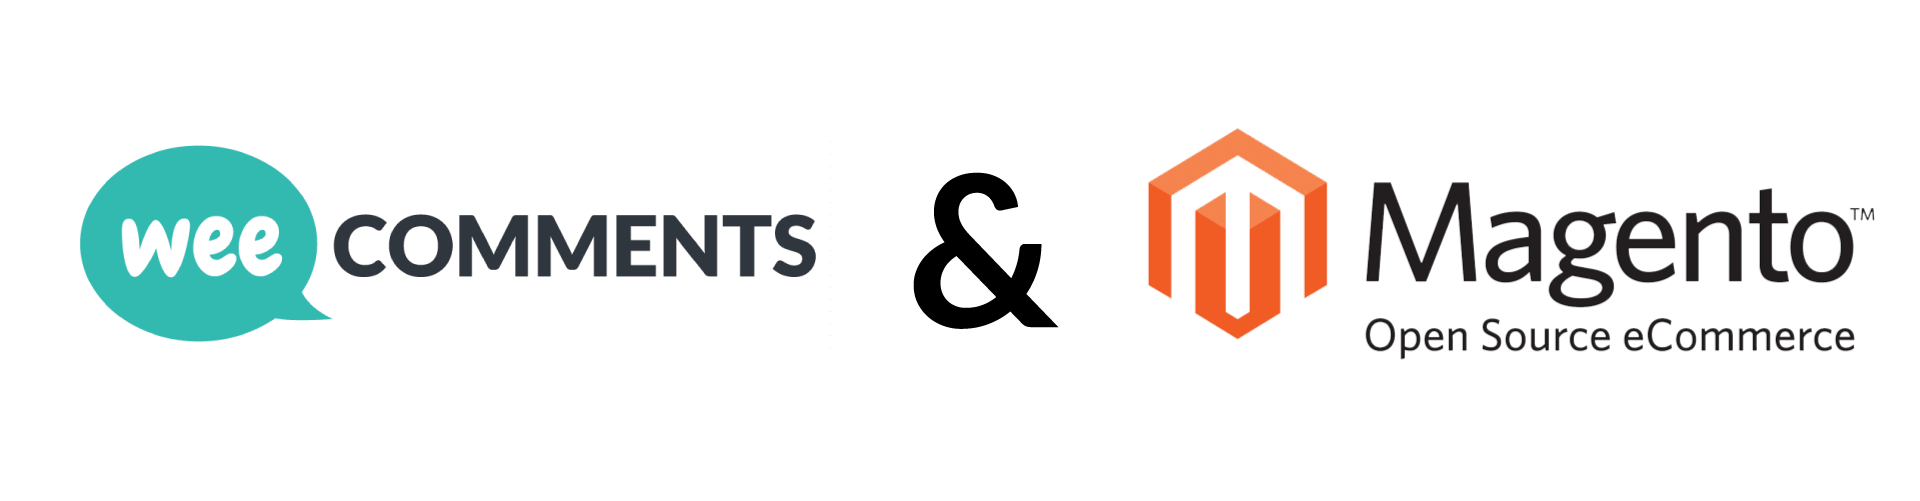 magento reviews extension Revi